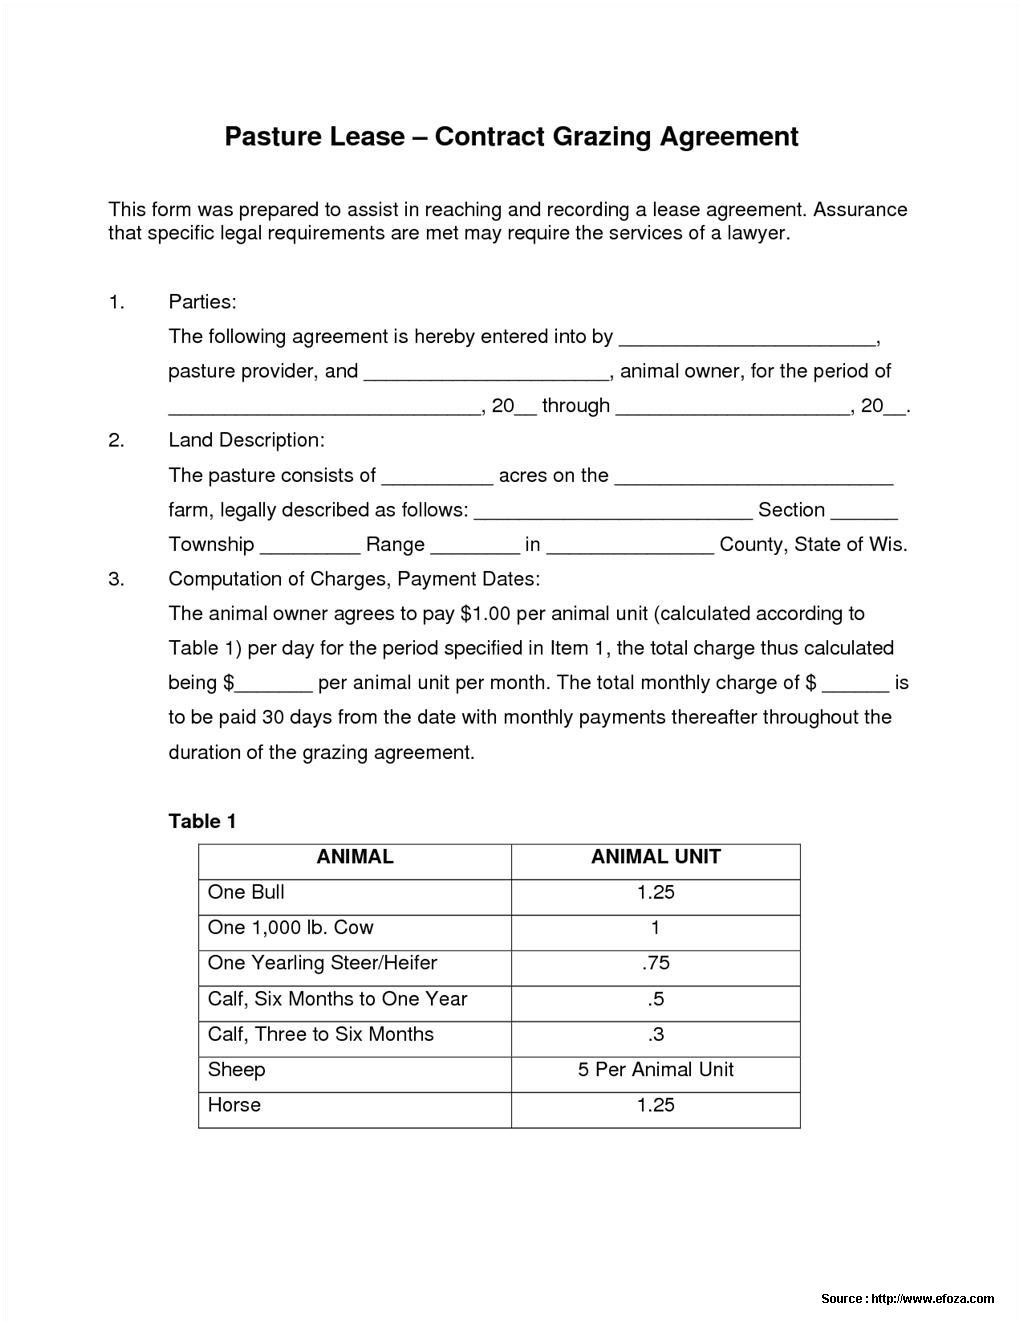 Grazing Lease Form Texas Form Resume Examples J1akn0vgme Texas Lease Agreement Form